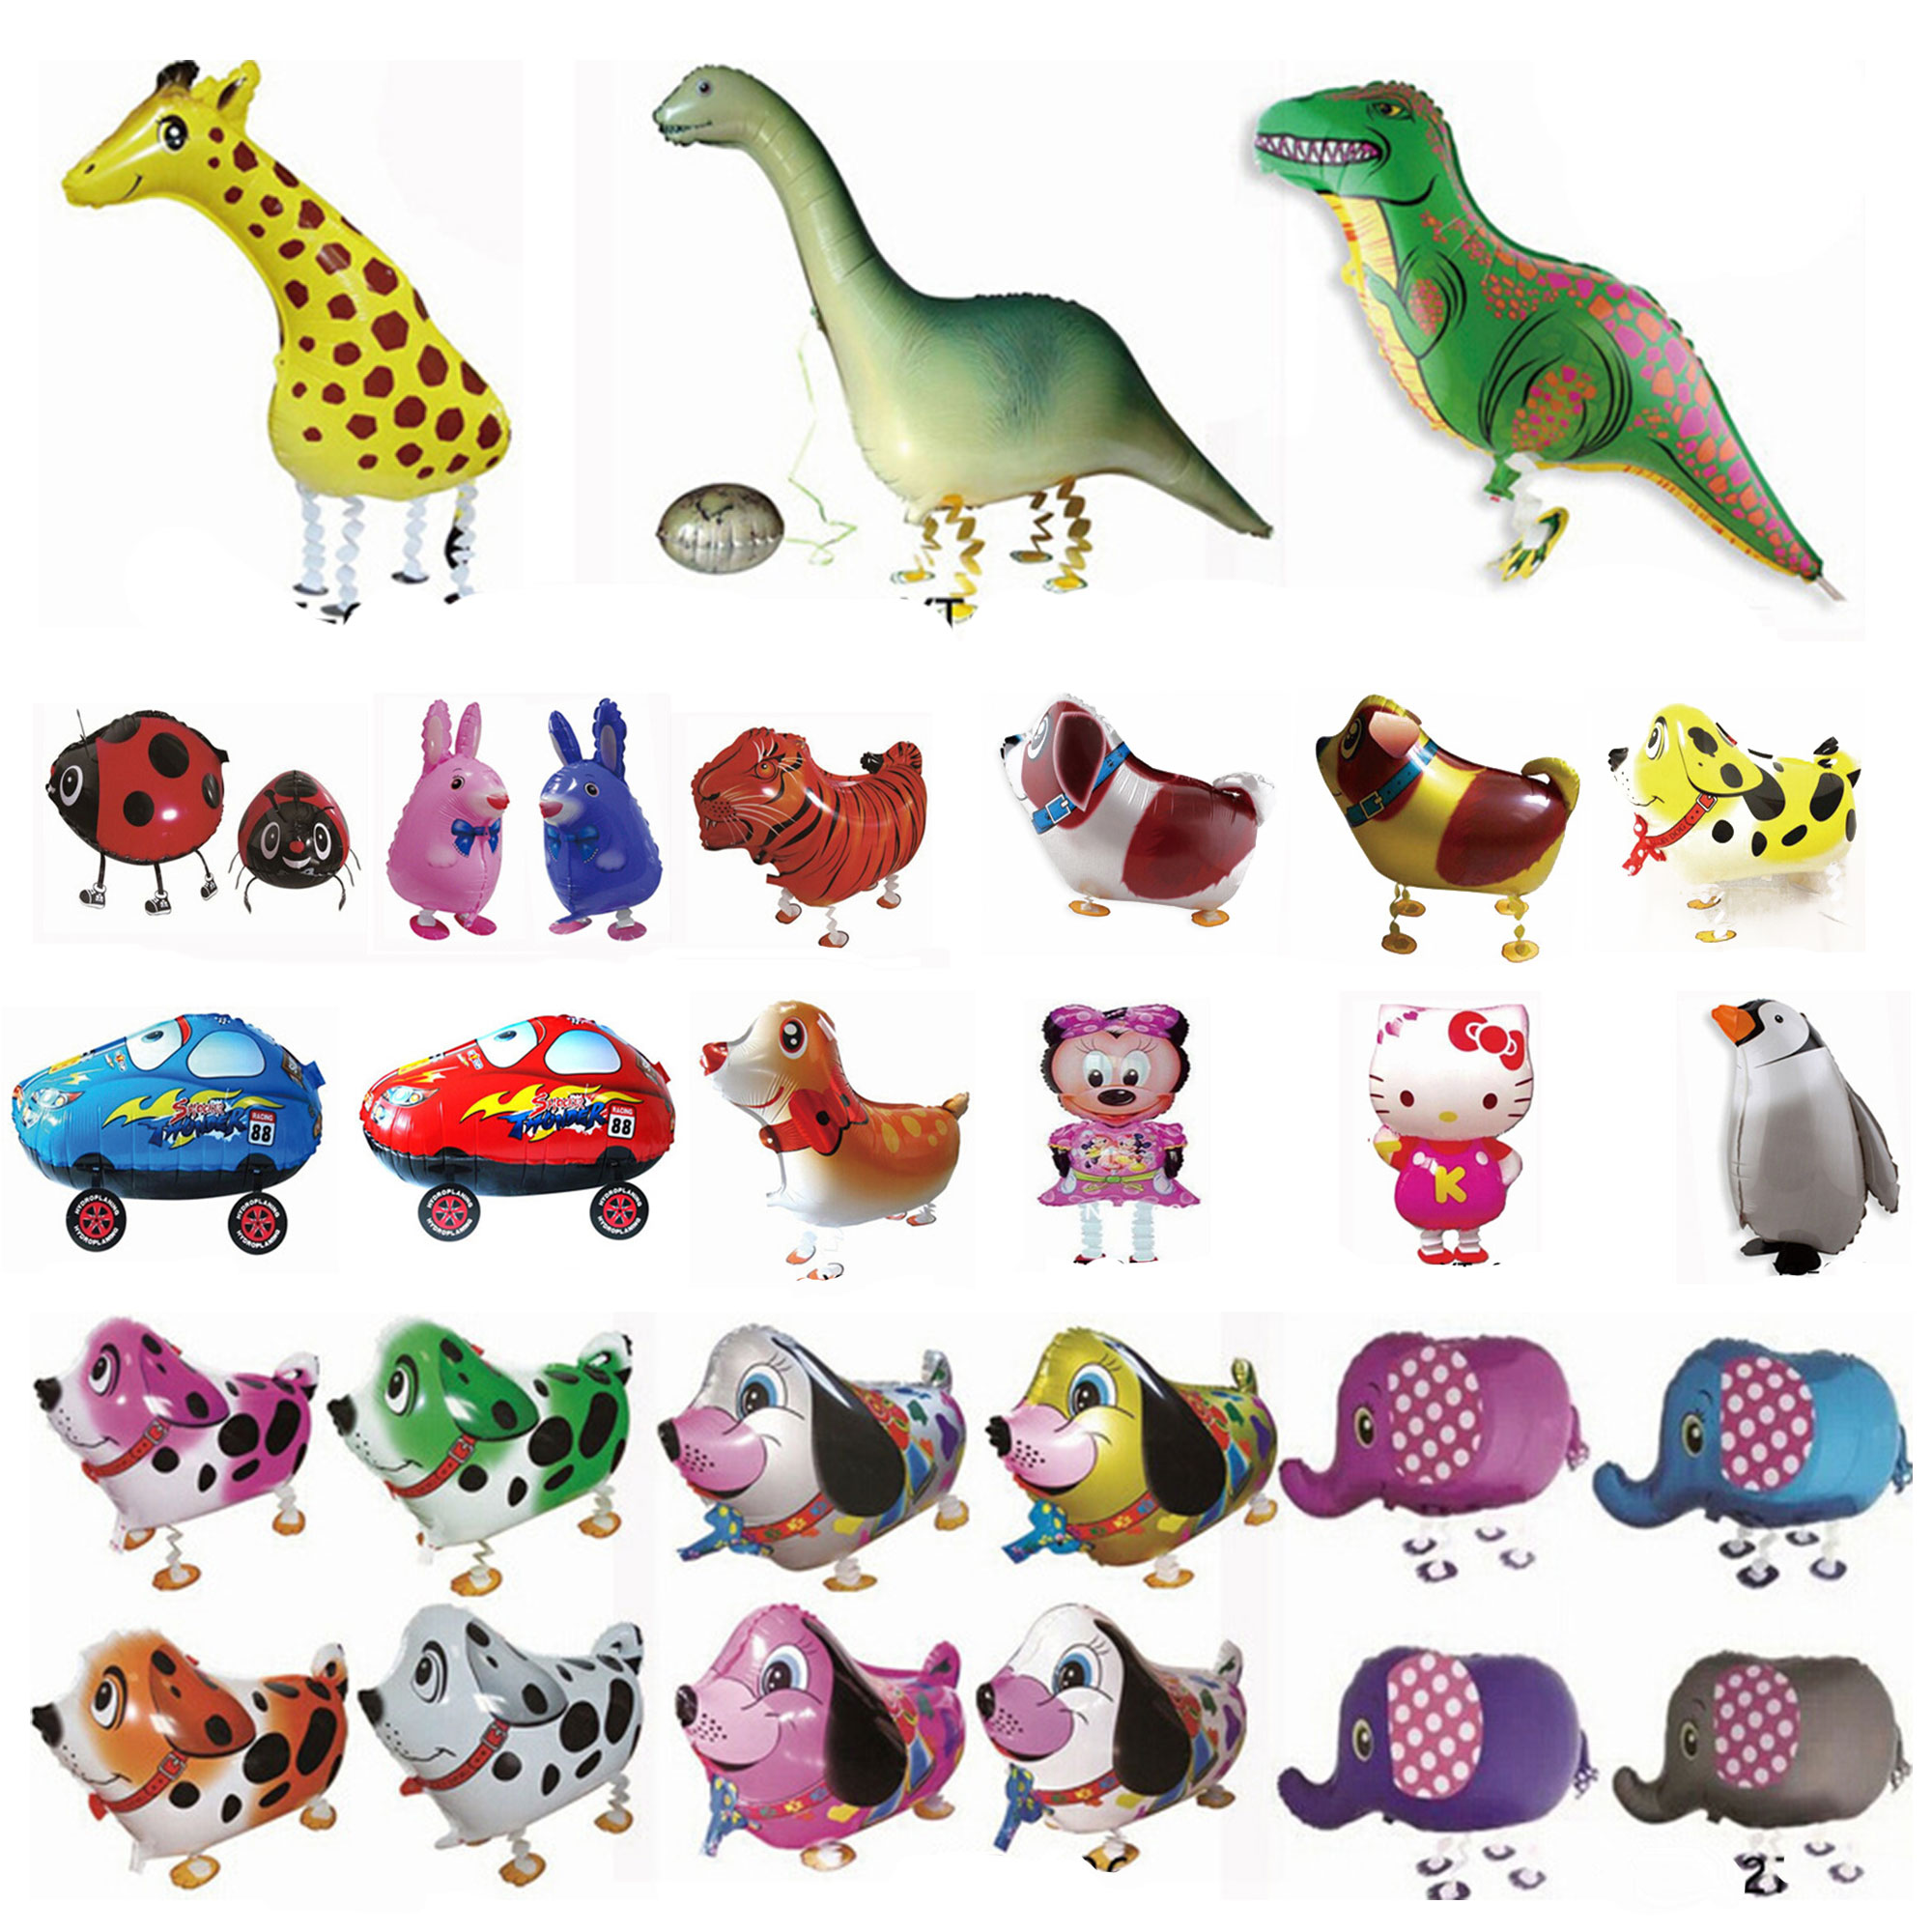 Walking Pet Foil Balloons Dinosaur Cartoon Animal Helium Airwalker Zoo Farm Pets Kids Fun Toys Party Decor